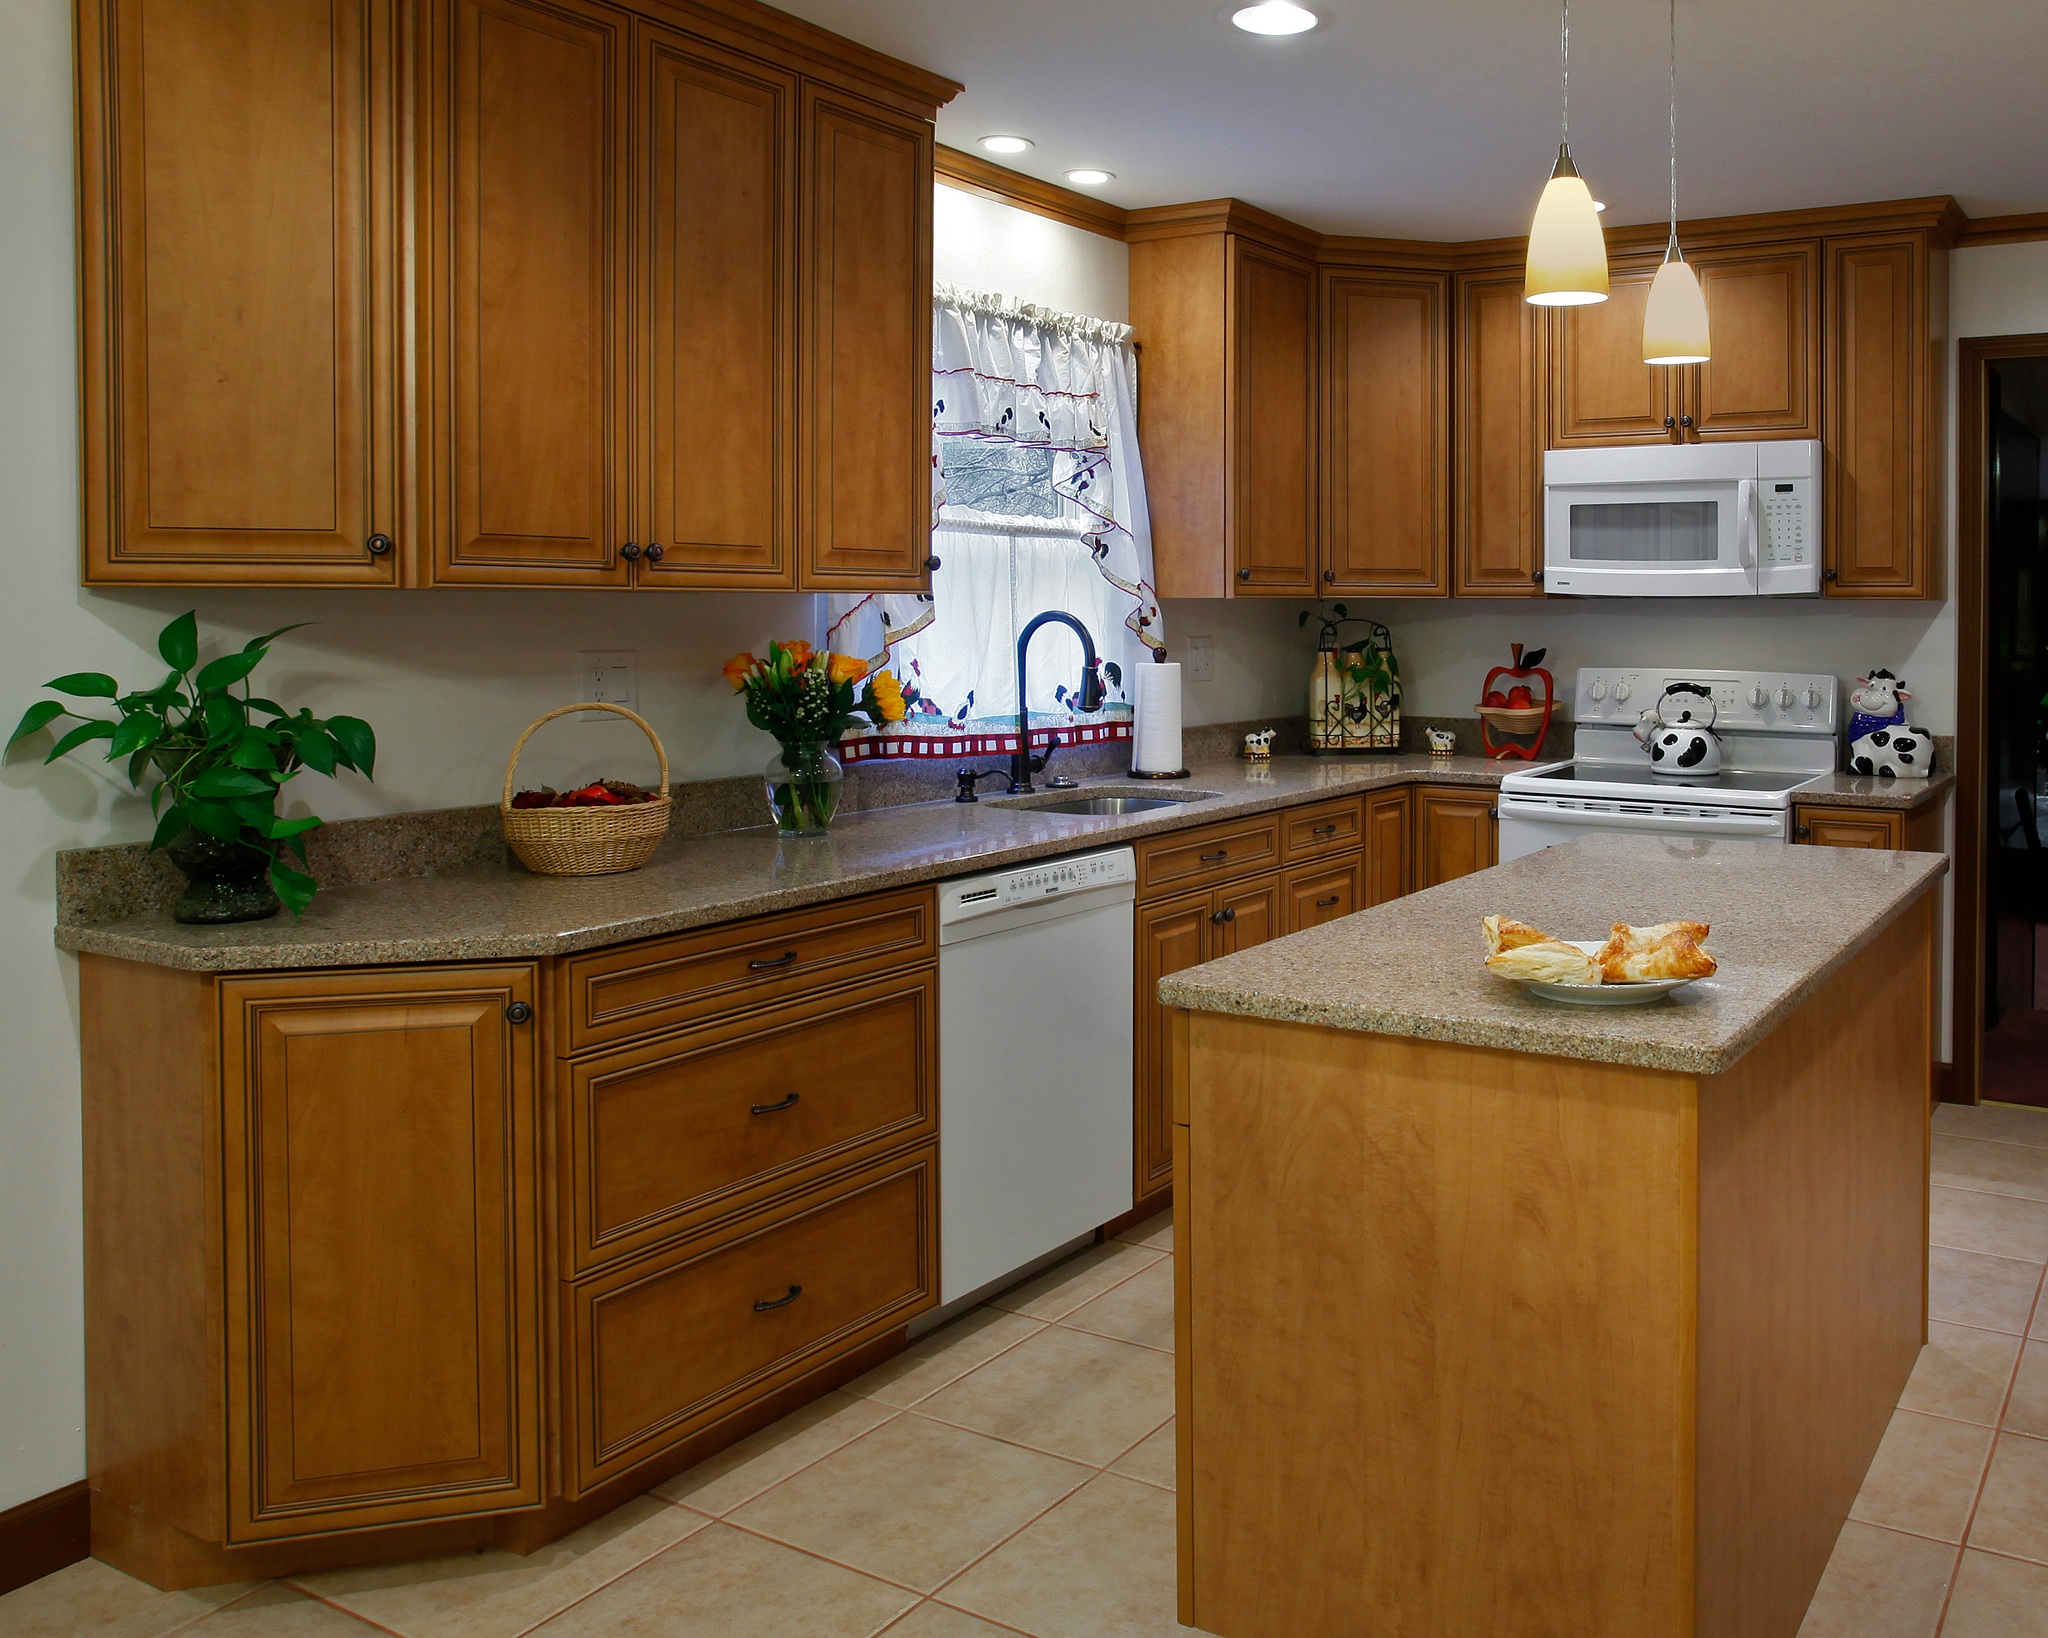 What are the best kitchen colors designs for resale for Best color for kitchen cabinets for resale